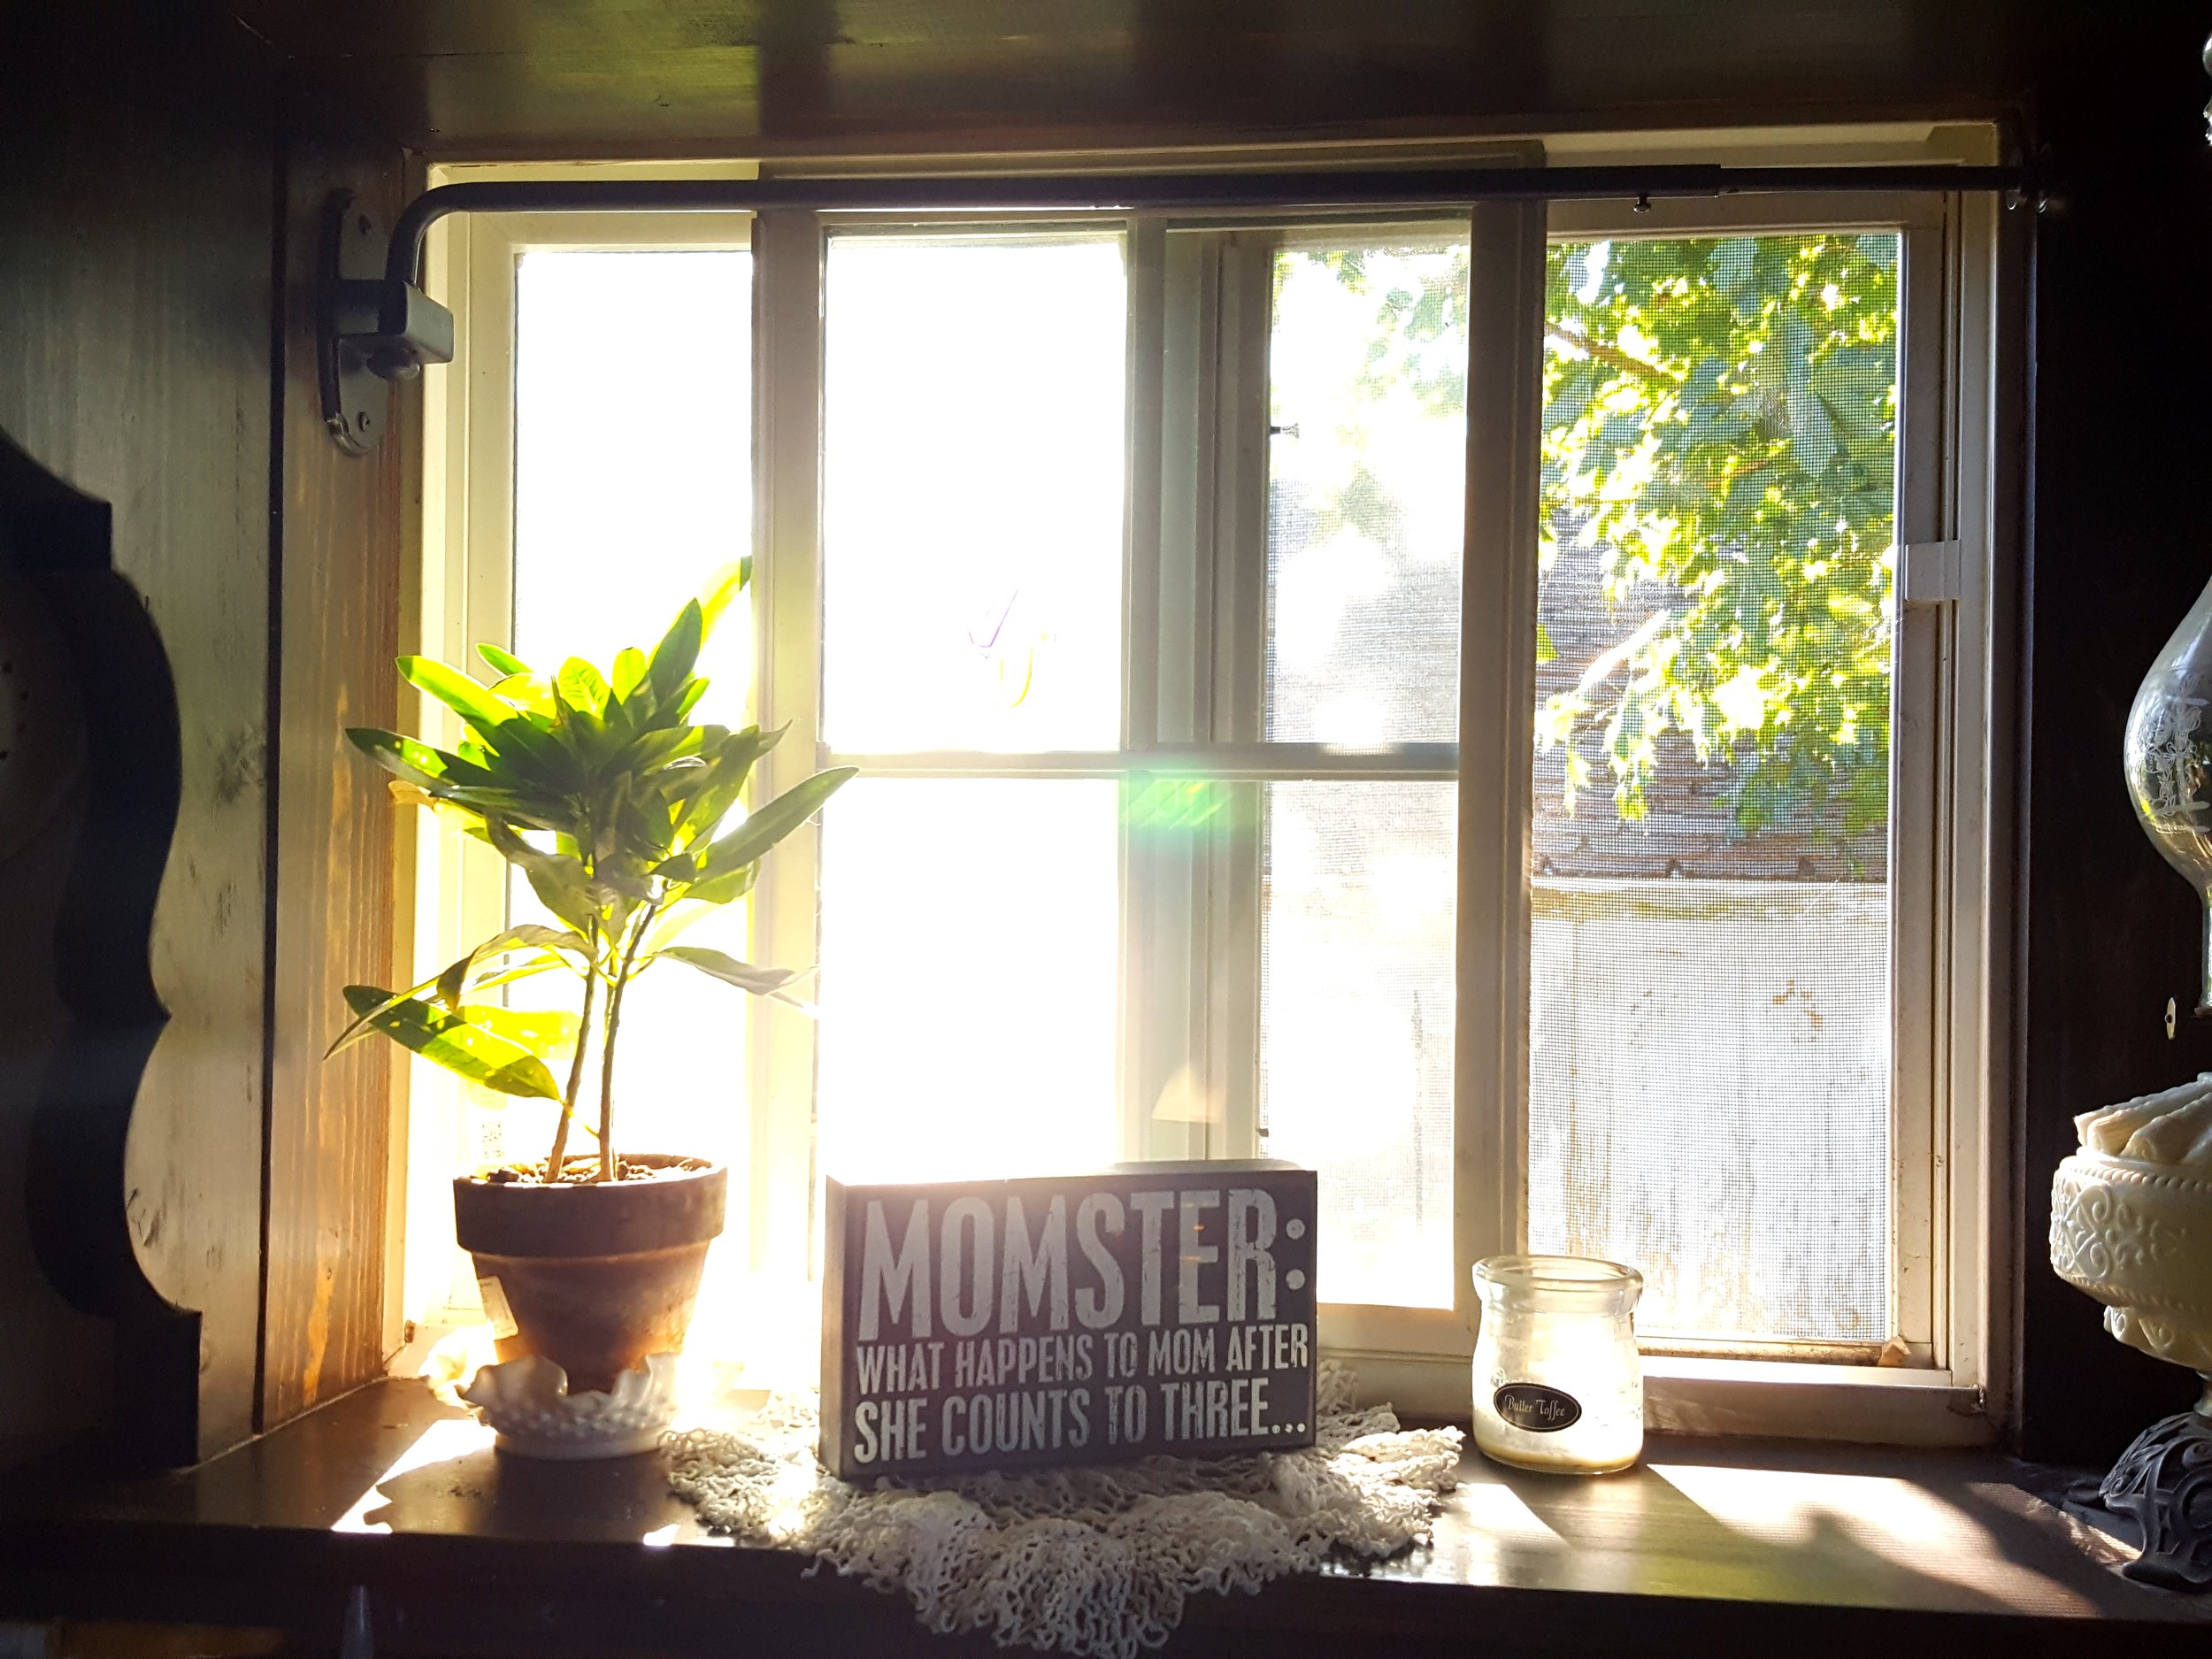 The morning sunshine streaming through my window.